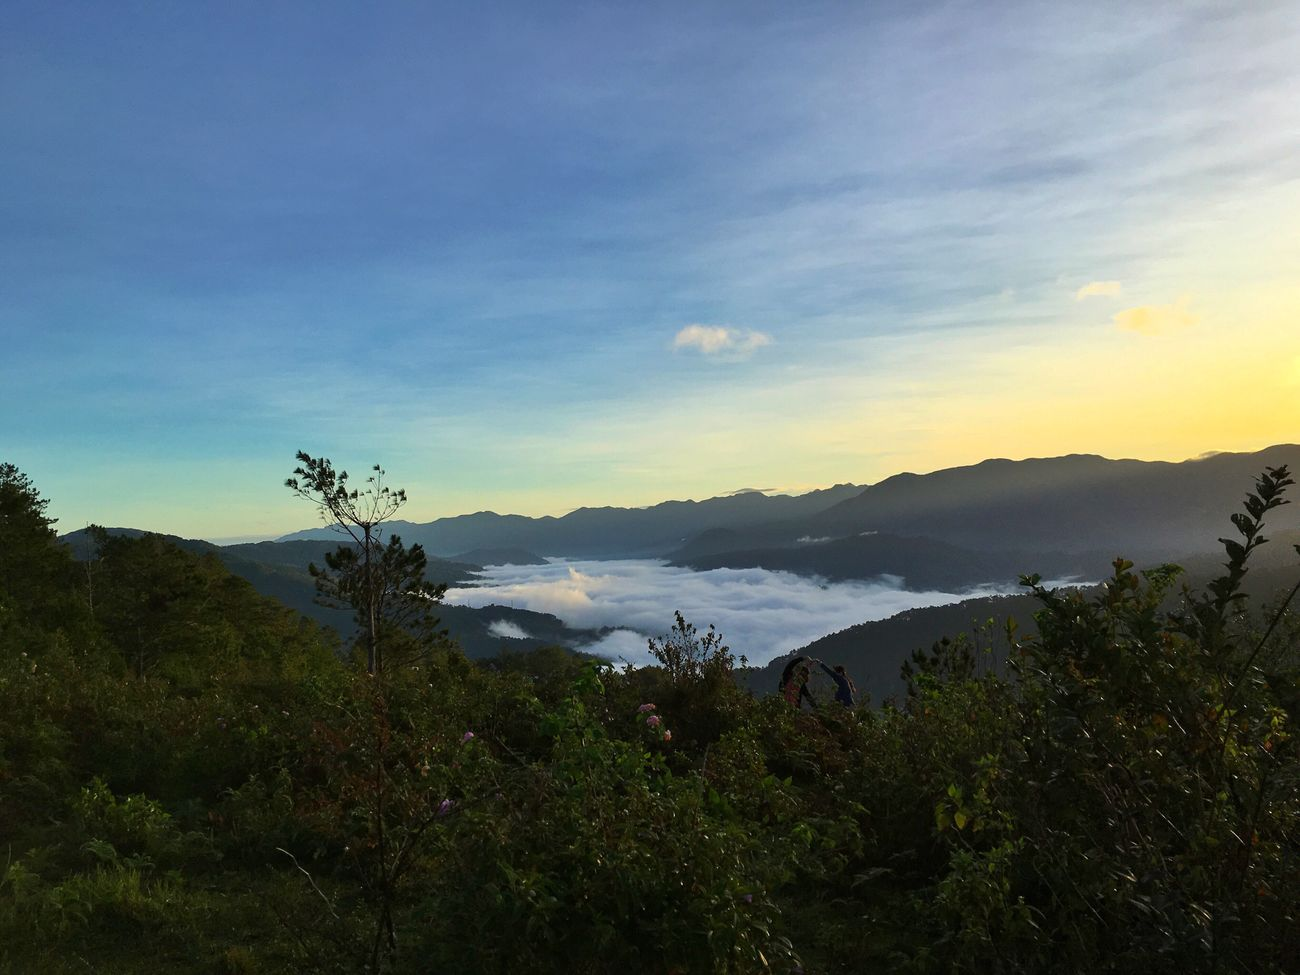 Sea of clouds. Mountain Tree Nature Beauty In Nature Sky Scenics Water Growth Idyllic Mountain Range Tranquility Outdoors Landscape Tranquil Scene Cloud - Sky Travel Destinations No People Forest Eyeem Philippines Sunrise_sunsets_aroundworld Sunrise Sunrise_Collection